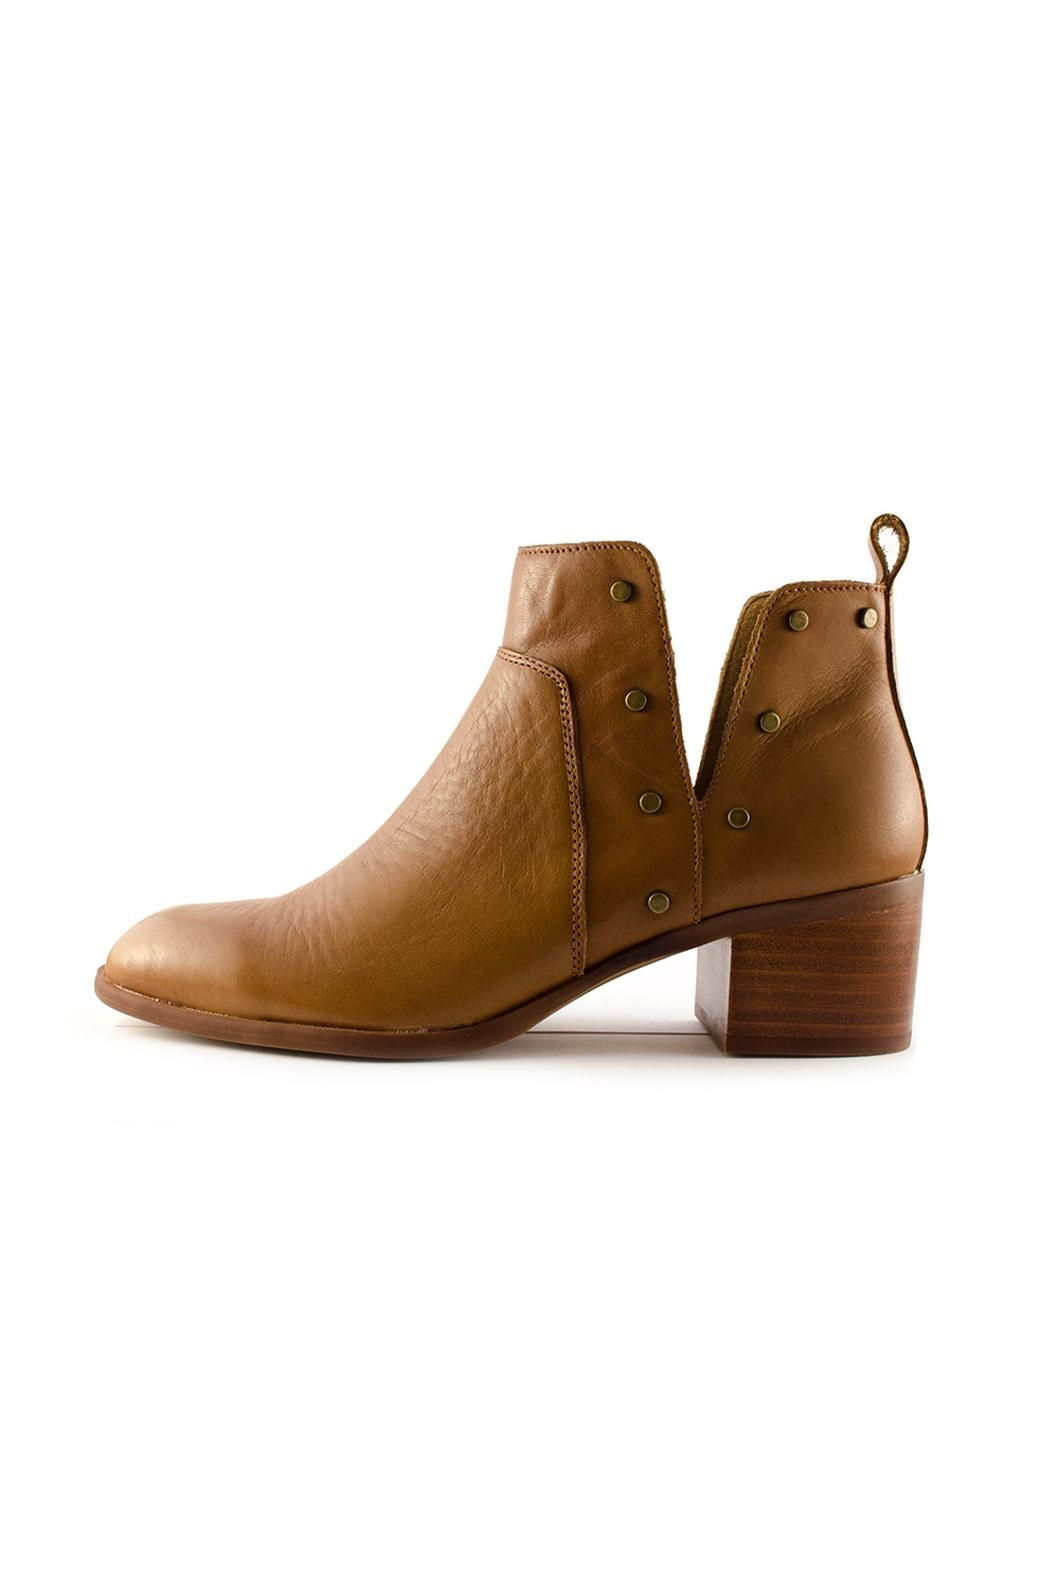 Franco Sarto Richland Leather Bootie - Main Image